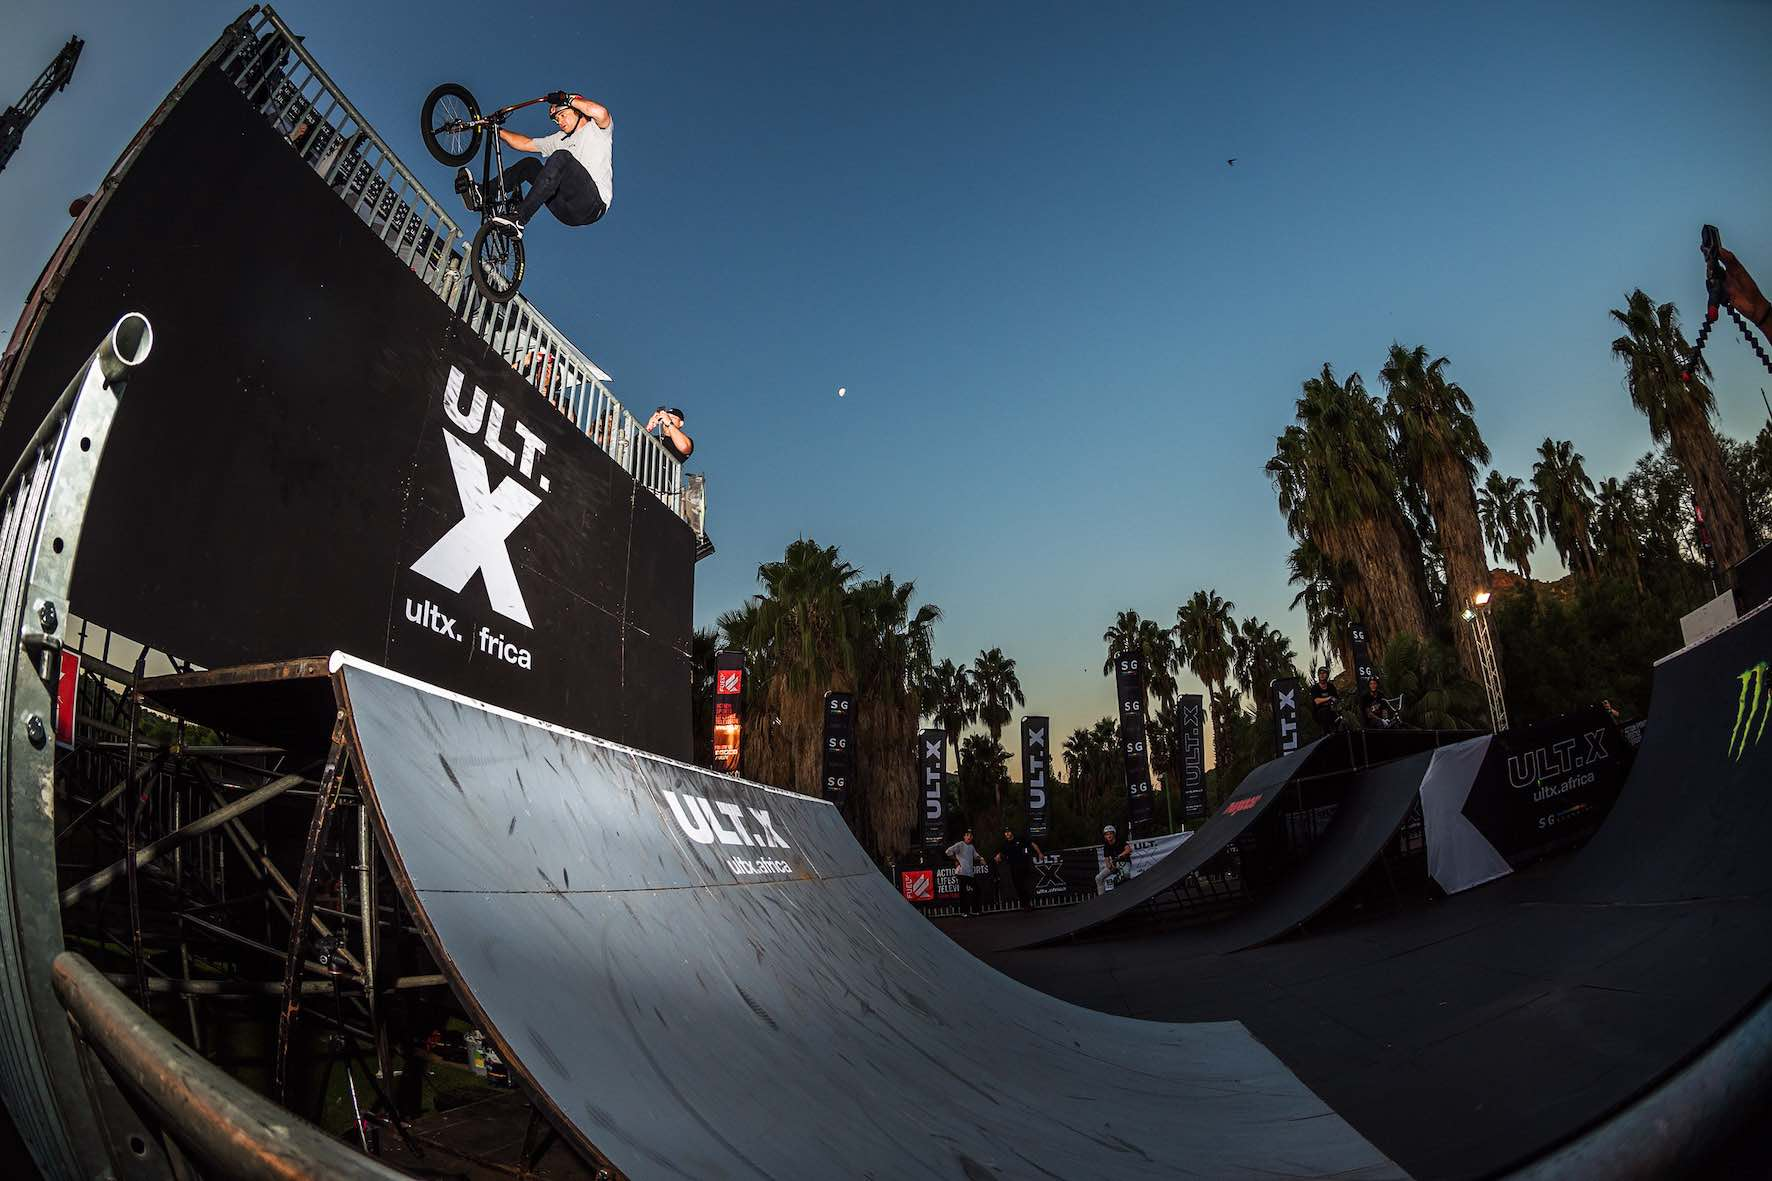 Drew Bezanson's insane Ice Pick at the Ultimate X BMX Best Trick